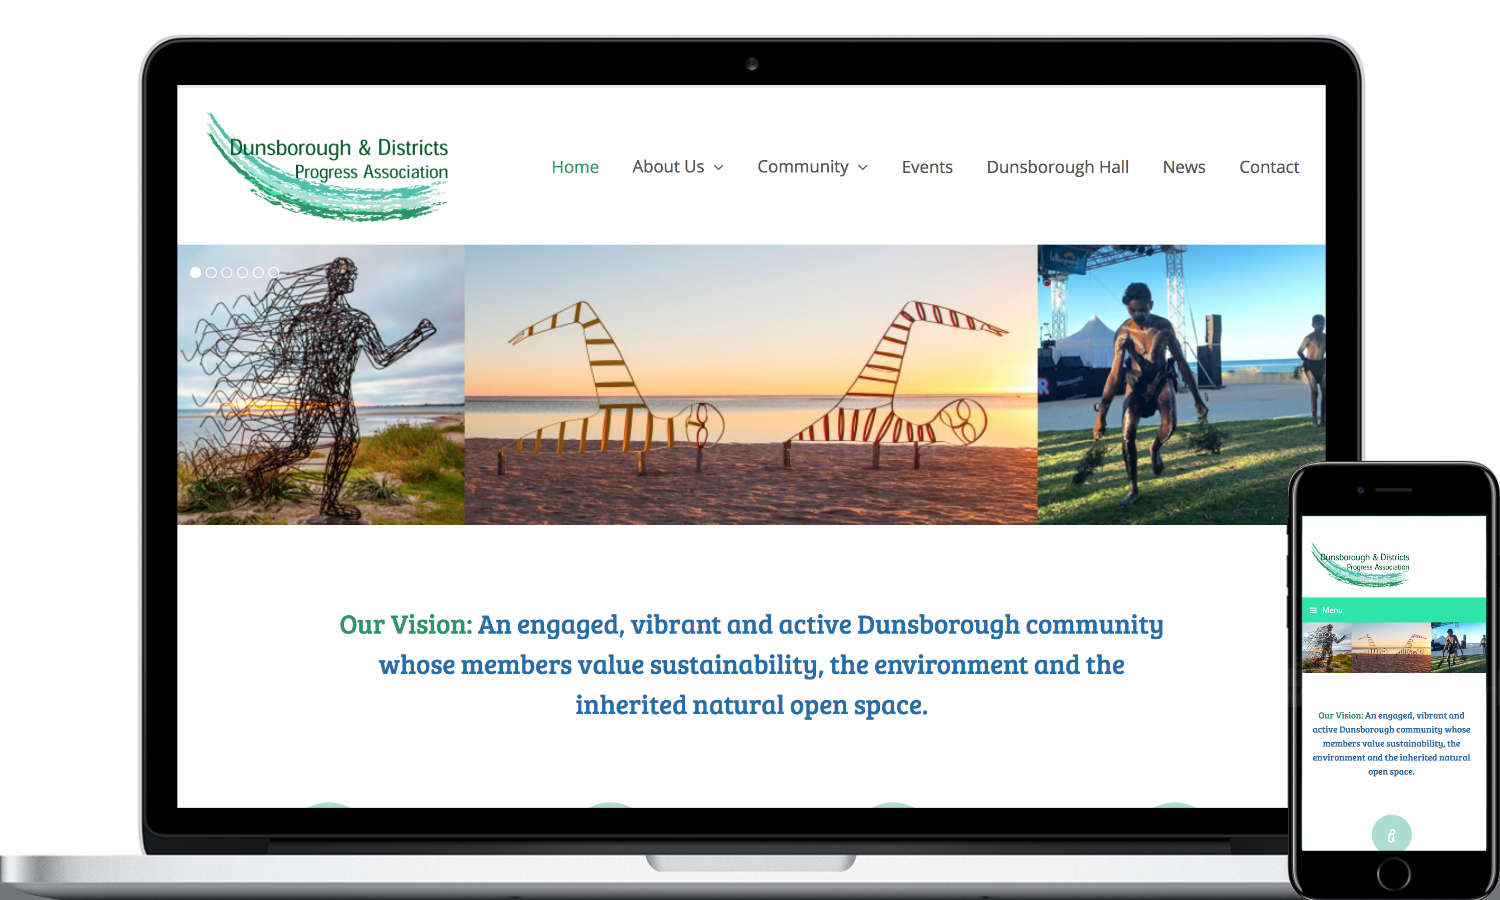 Lucy Jordanoff Web Design Dunsborough Progress